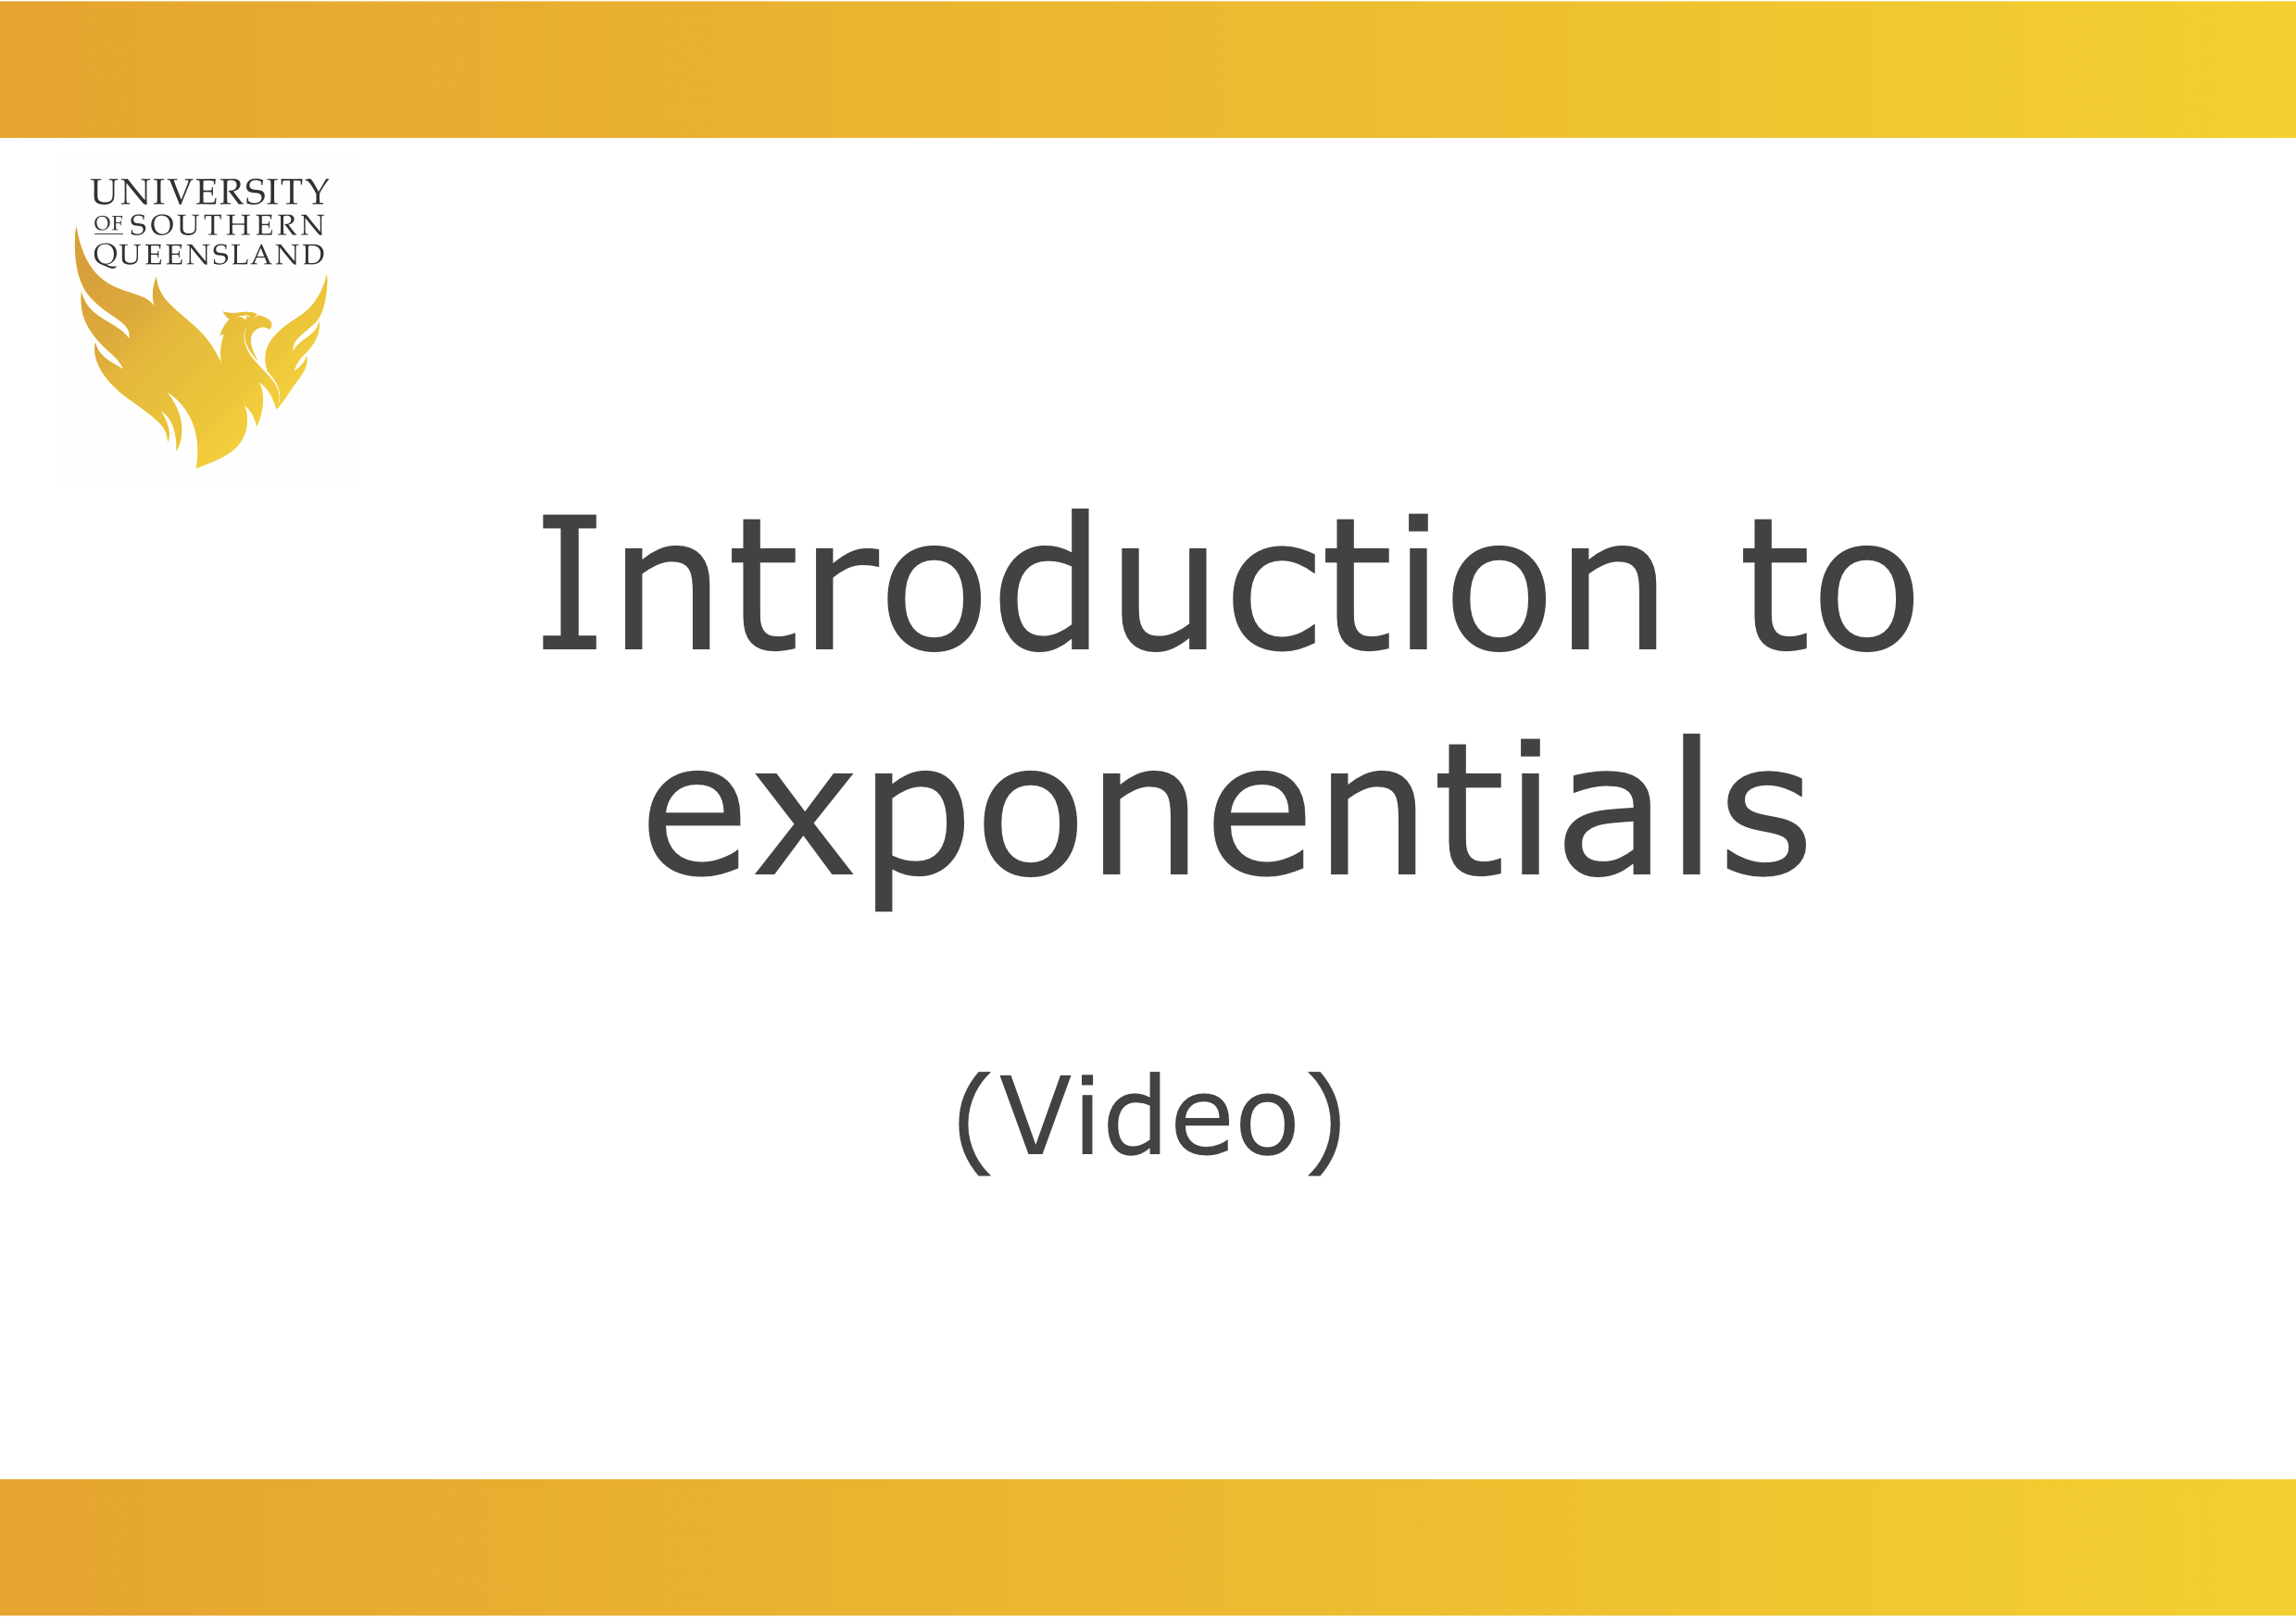 Introduction to exponentials video